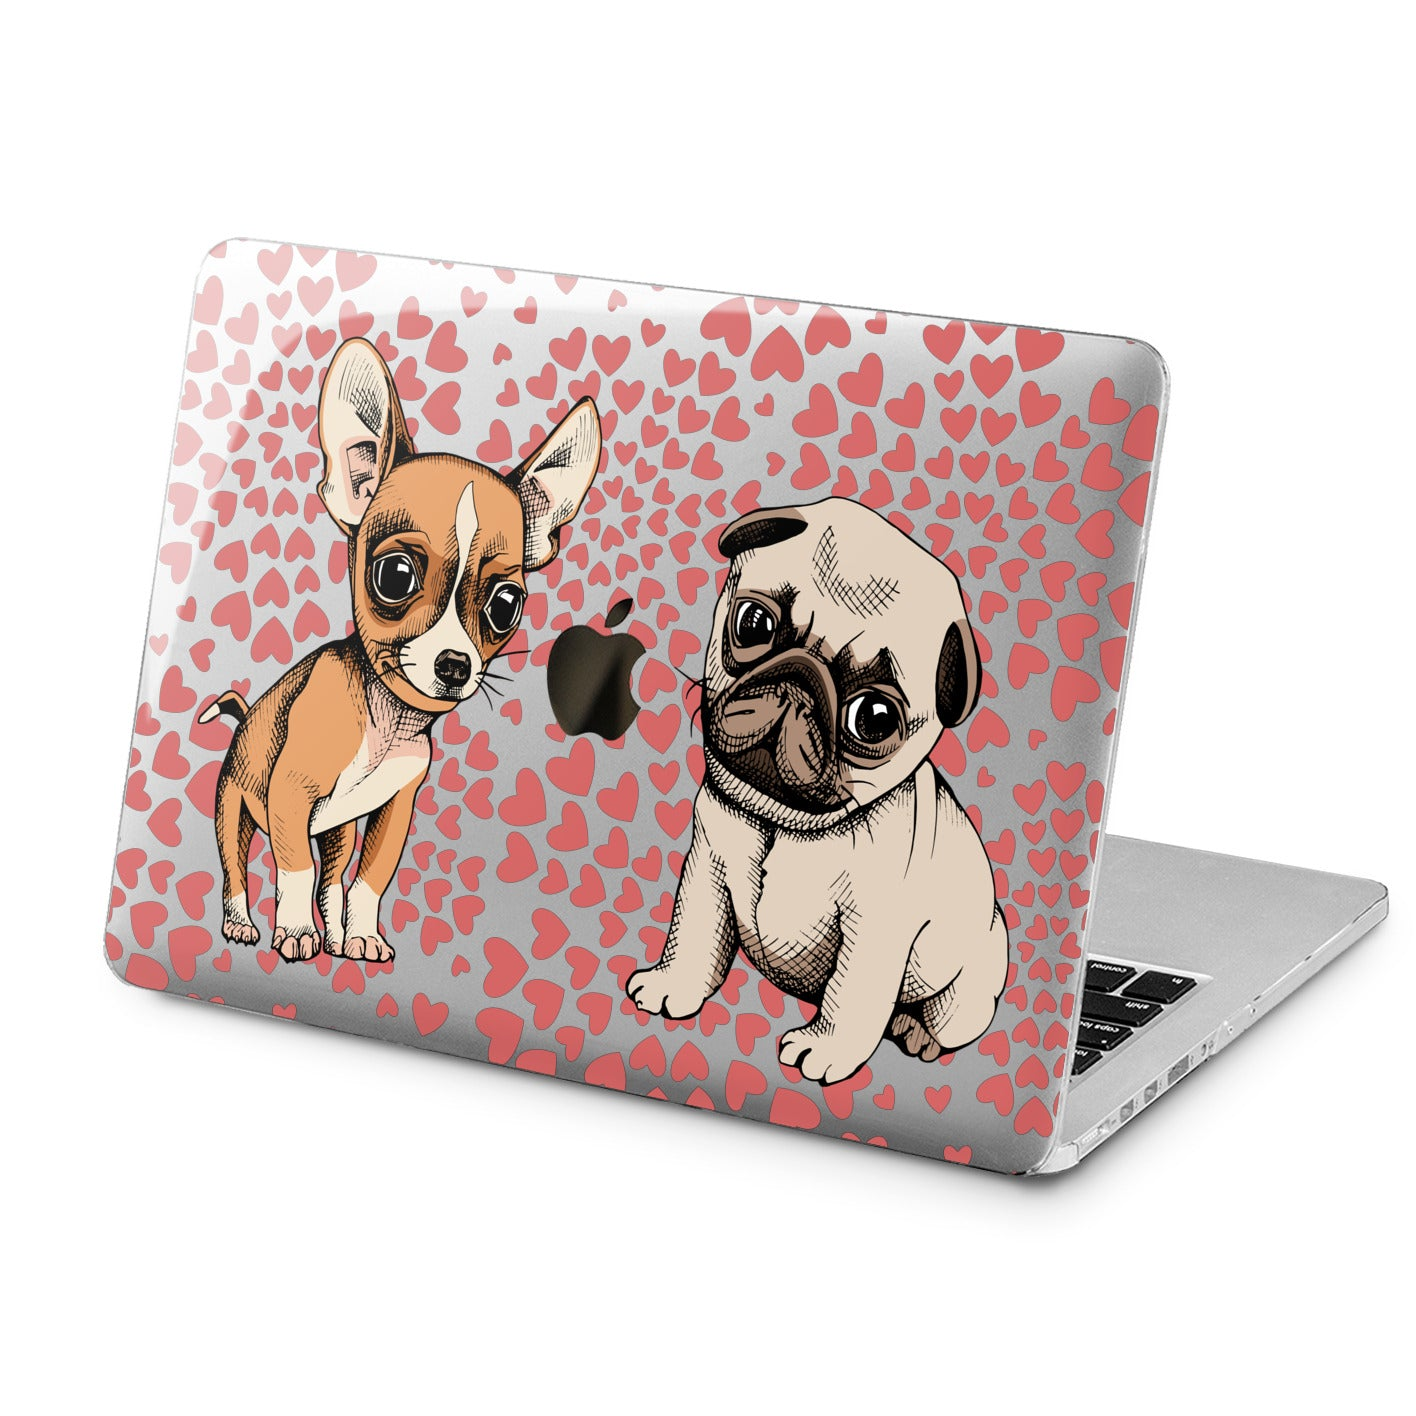 Lex Altern Lex Altern Cute Puppies Case for your Laptop Apple Macbook.